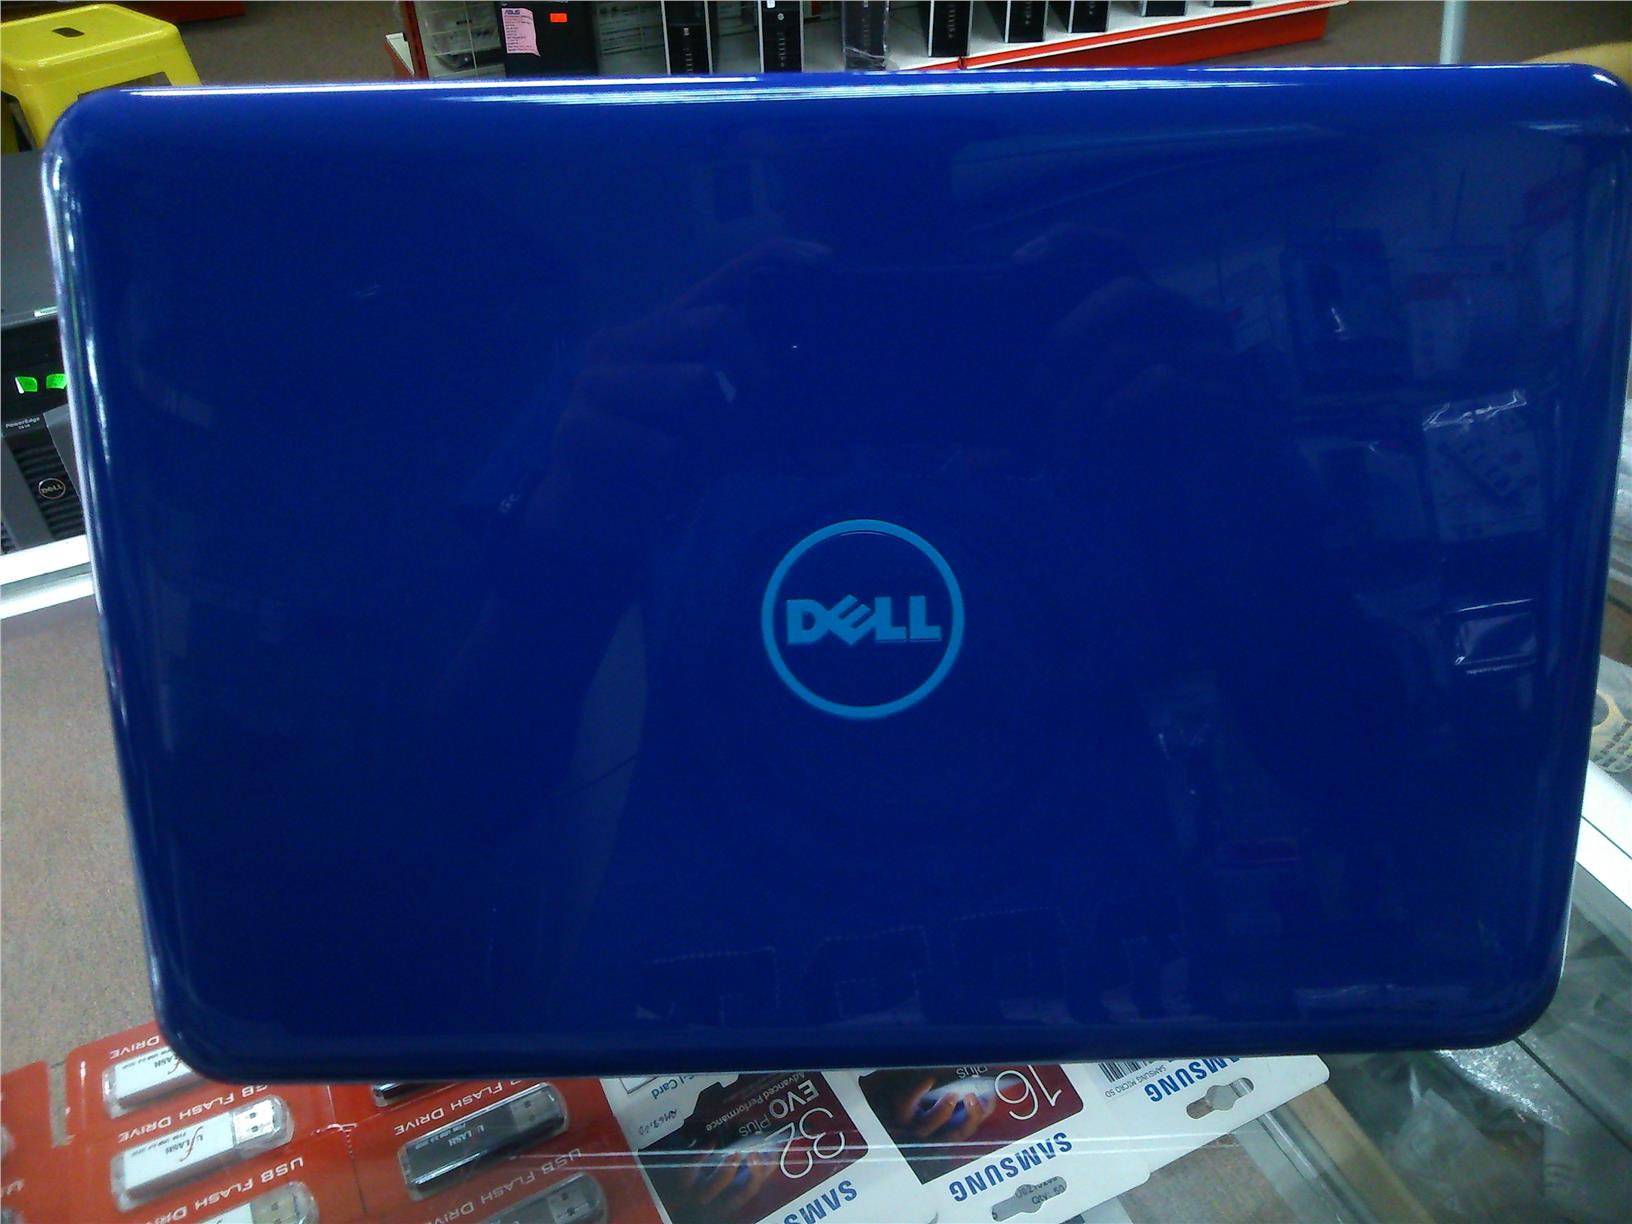 NEW !!! Dell Inspiron 11 3162-0525SG-W10 Notebook N3050 1.60-2.16Ghz